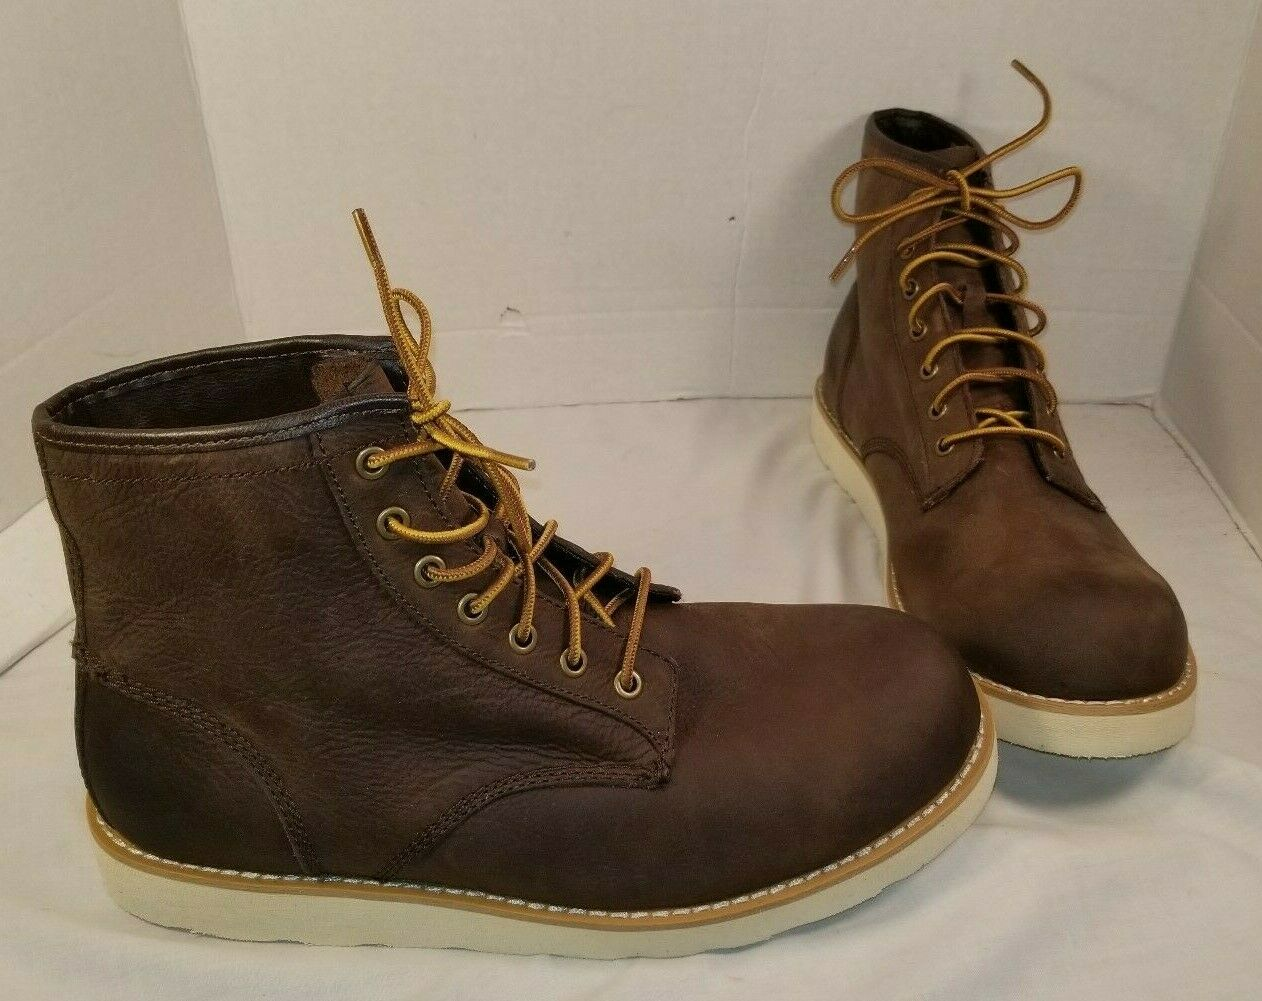 3f45e4718c136 NEW AMERICAN EAGLE OUTFITTERS LACE UP DARK BOOTS US MEN S 12 BROWN LEATHER  zkevol8754-Boots